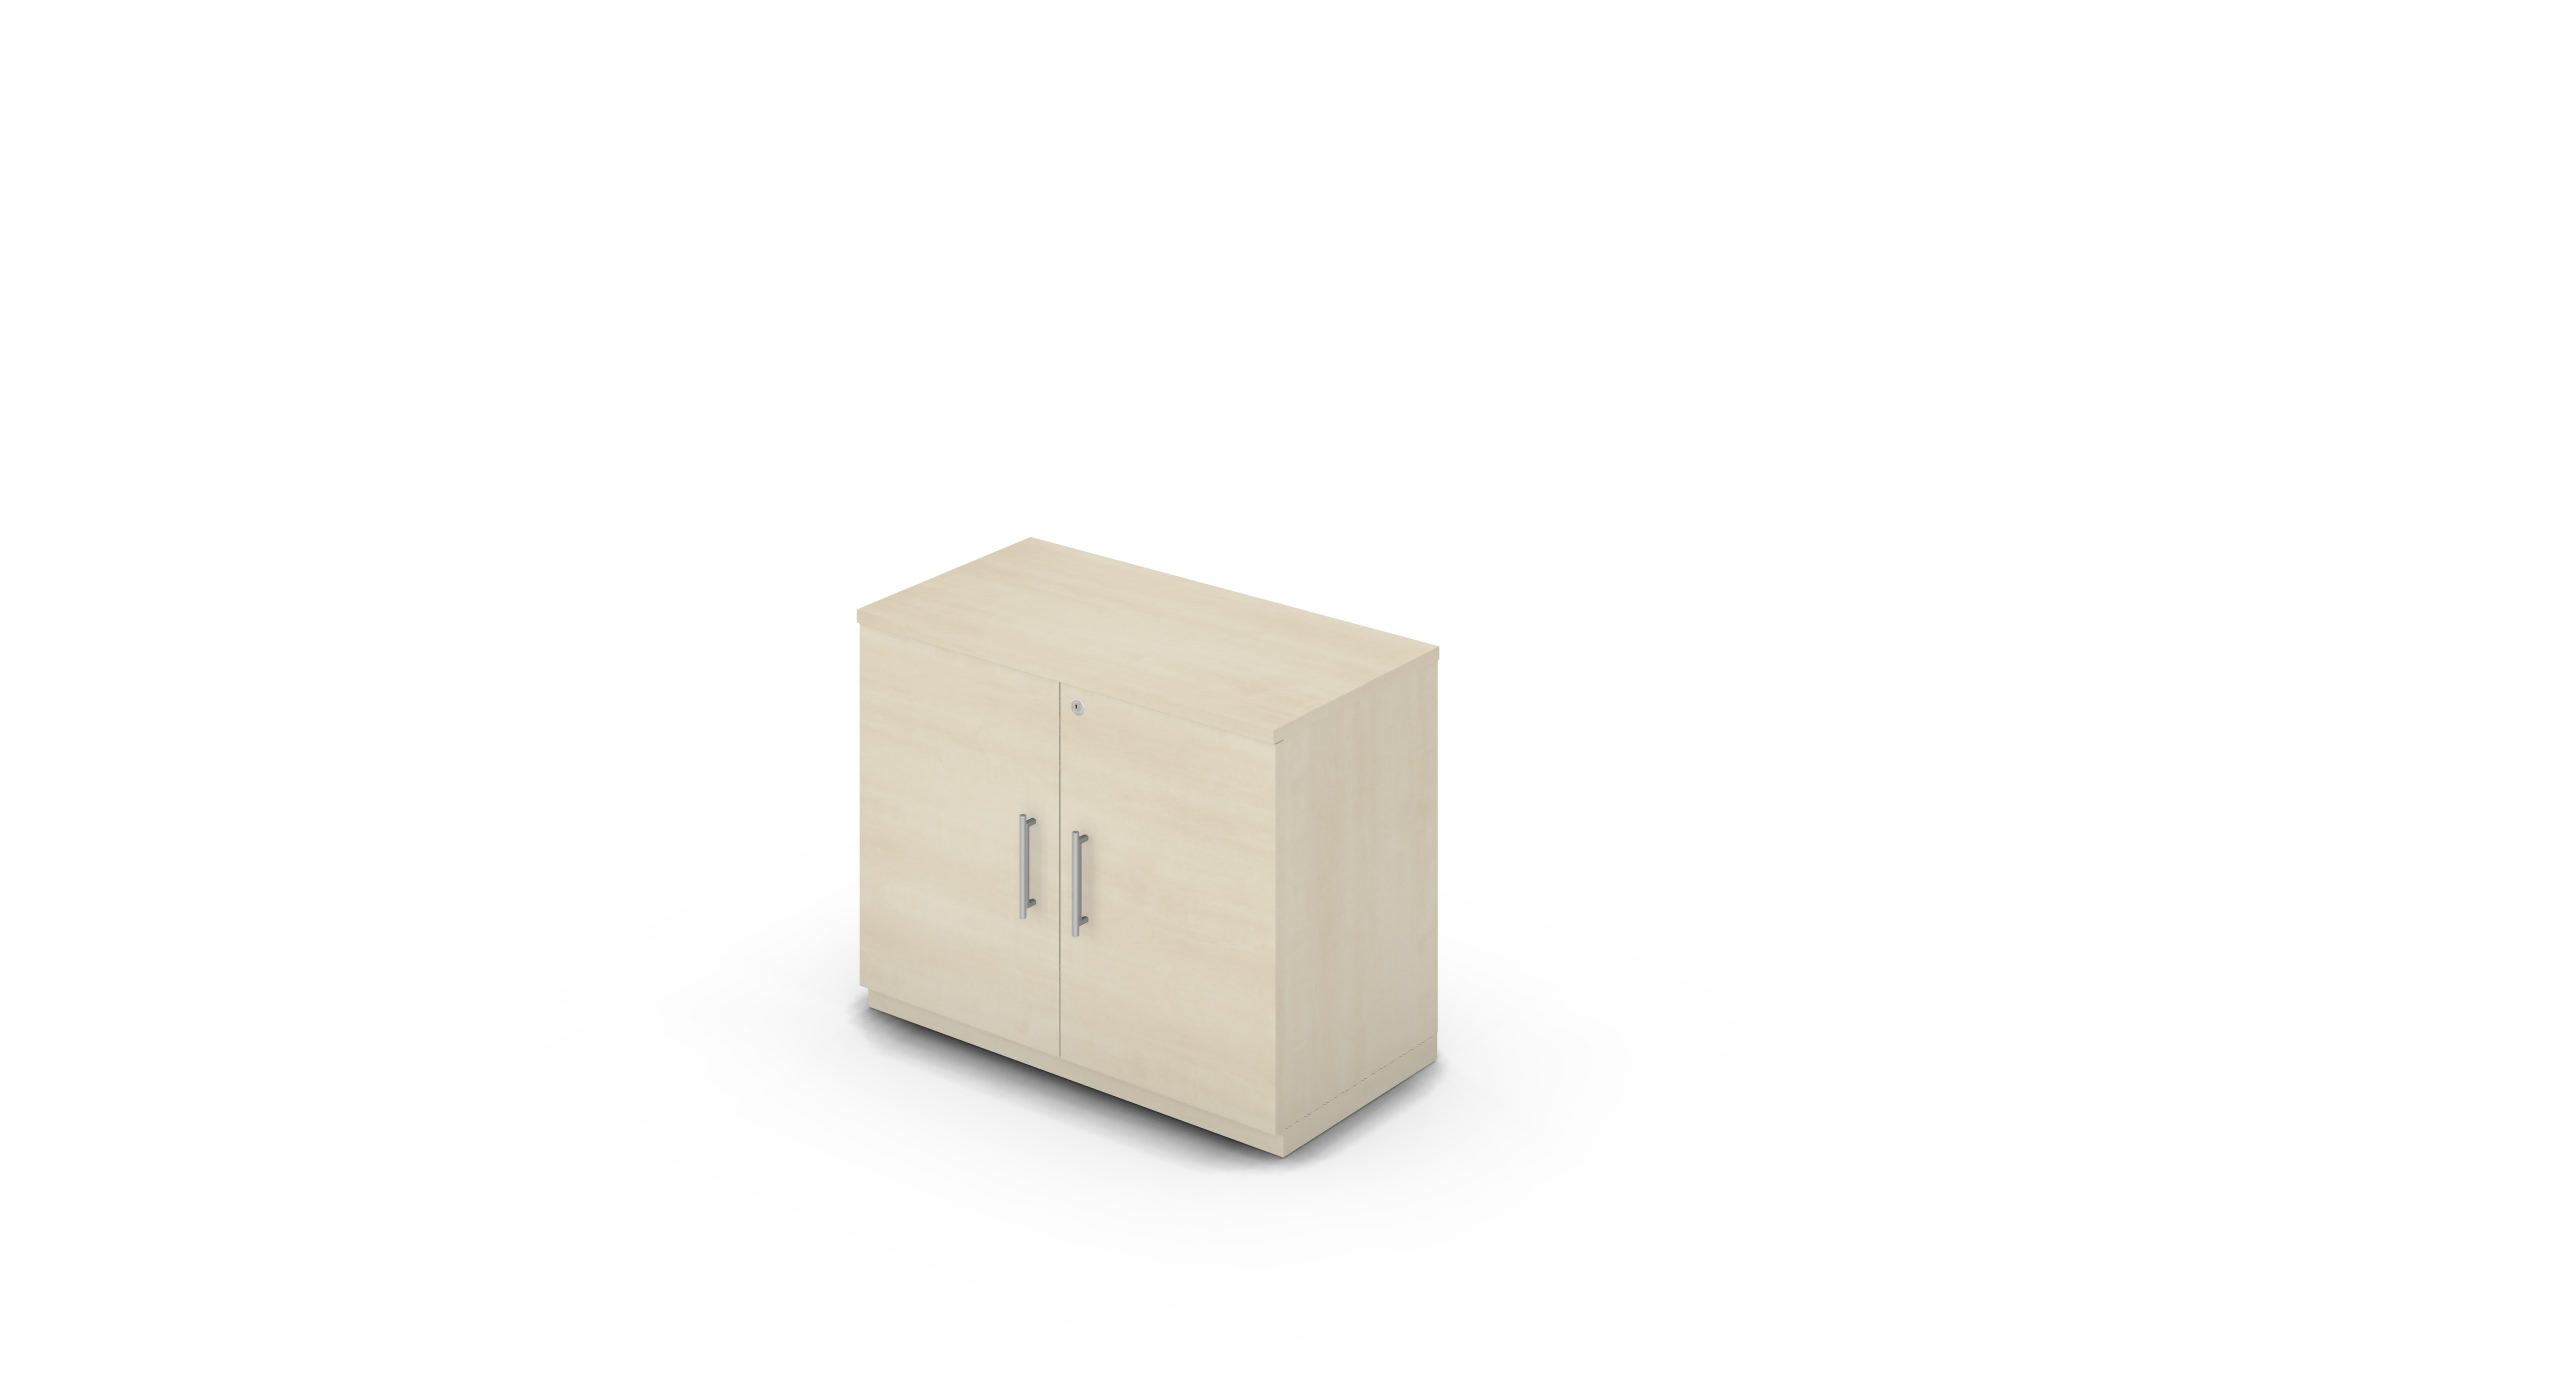 Cabinet_900x450x775_HD_Maple_Bar_Square_WithCylinder